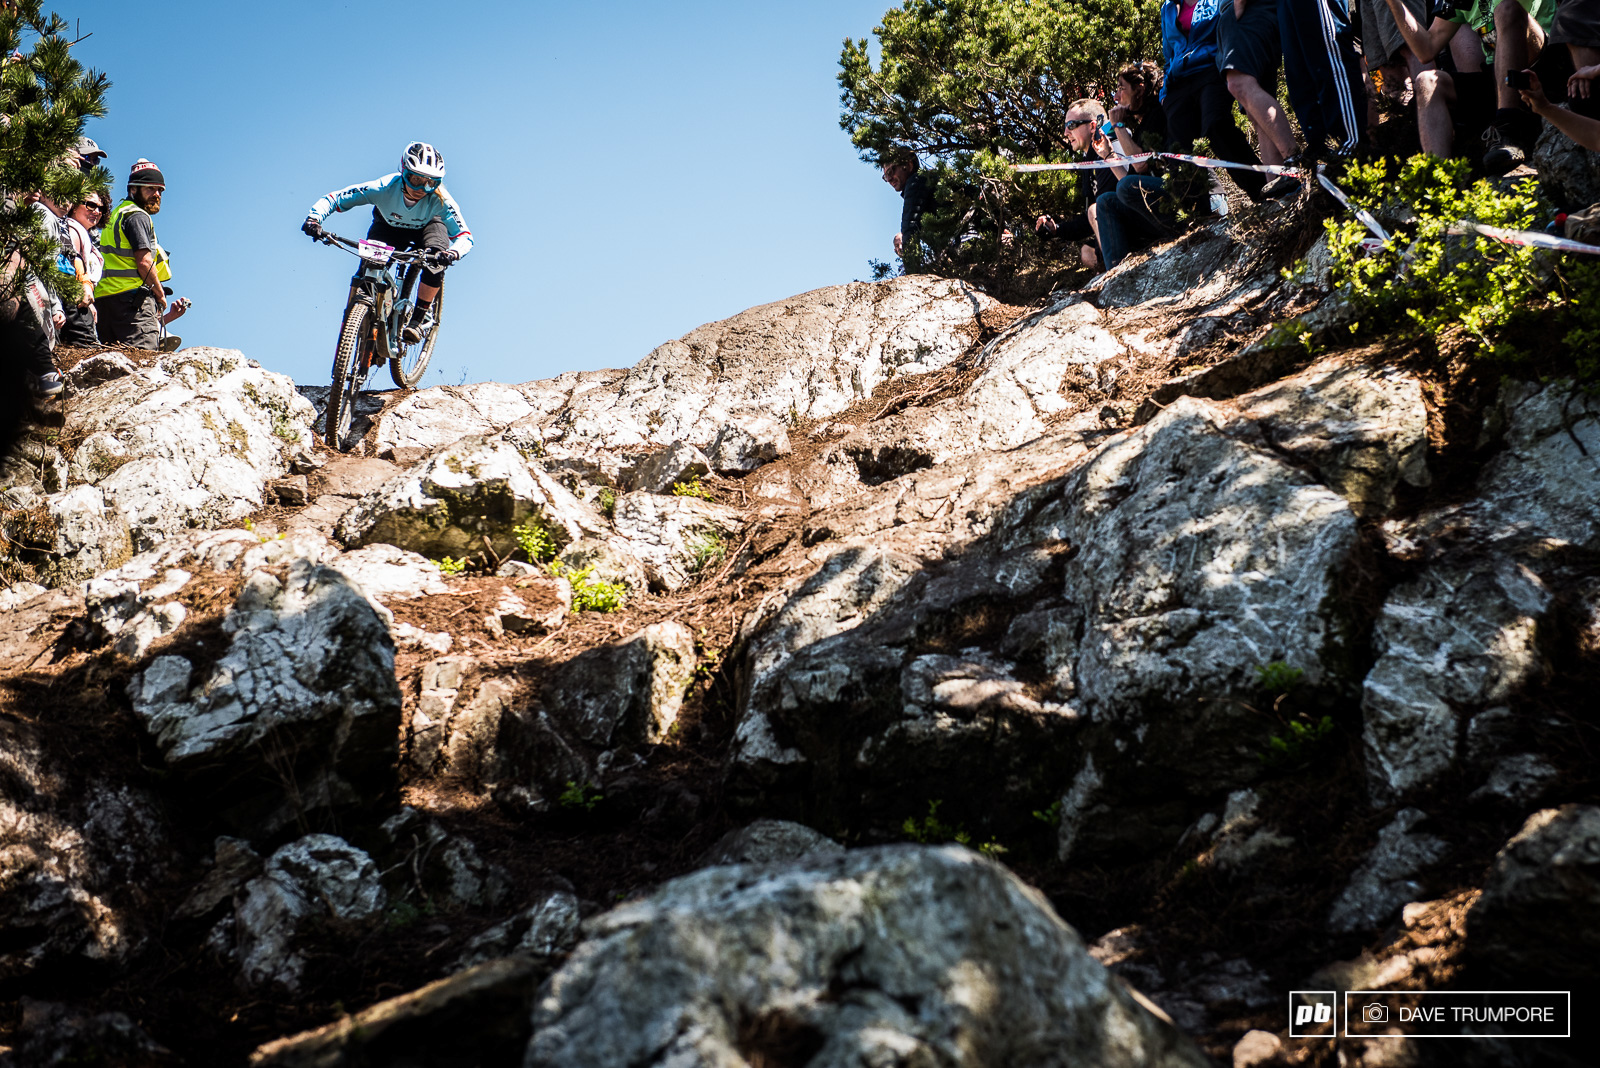 Katy Winton drops into the gnarly rocks at the top of stage three.